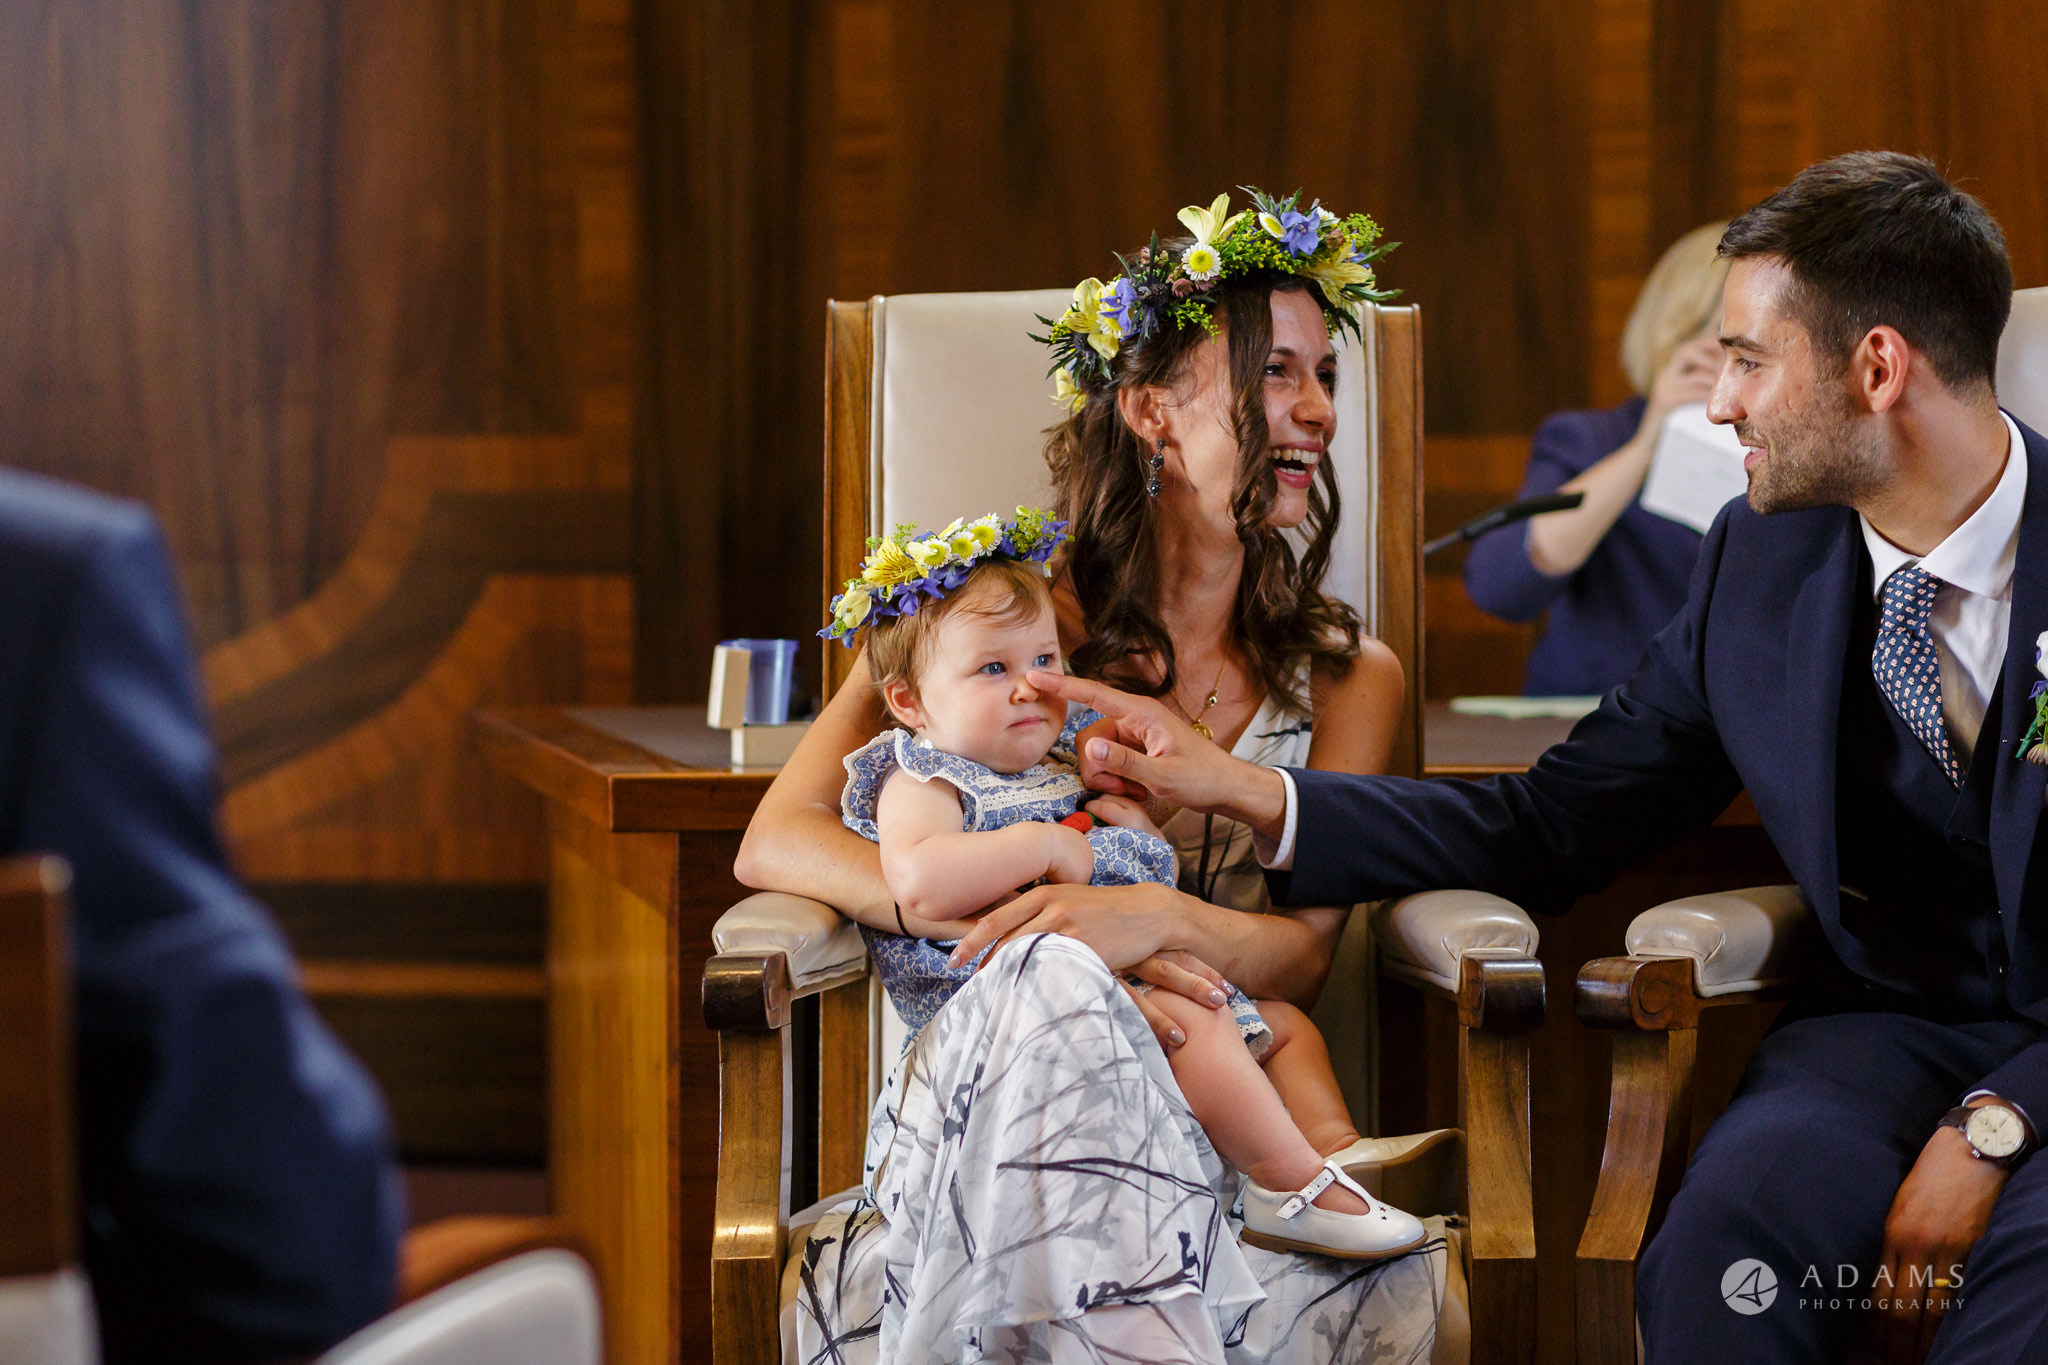 Clissold house wedding groom playing with the baby